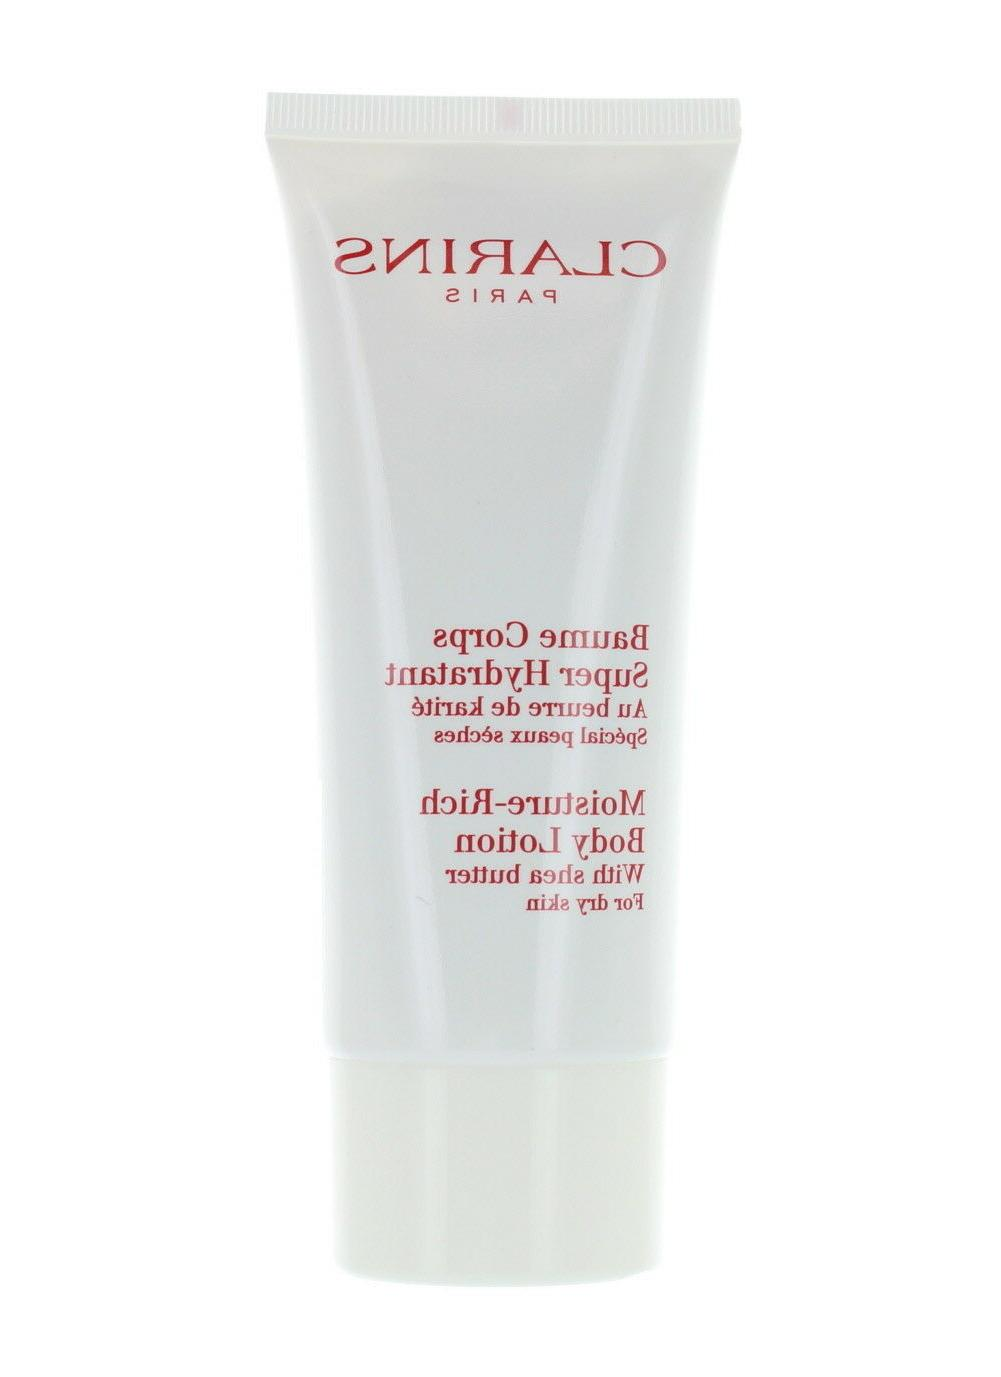 moisture rich body lotion for dry skin